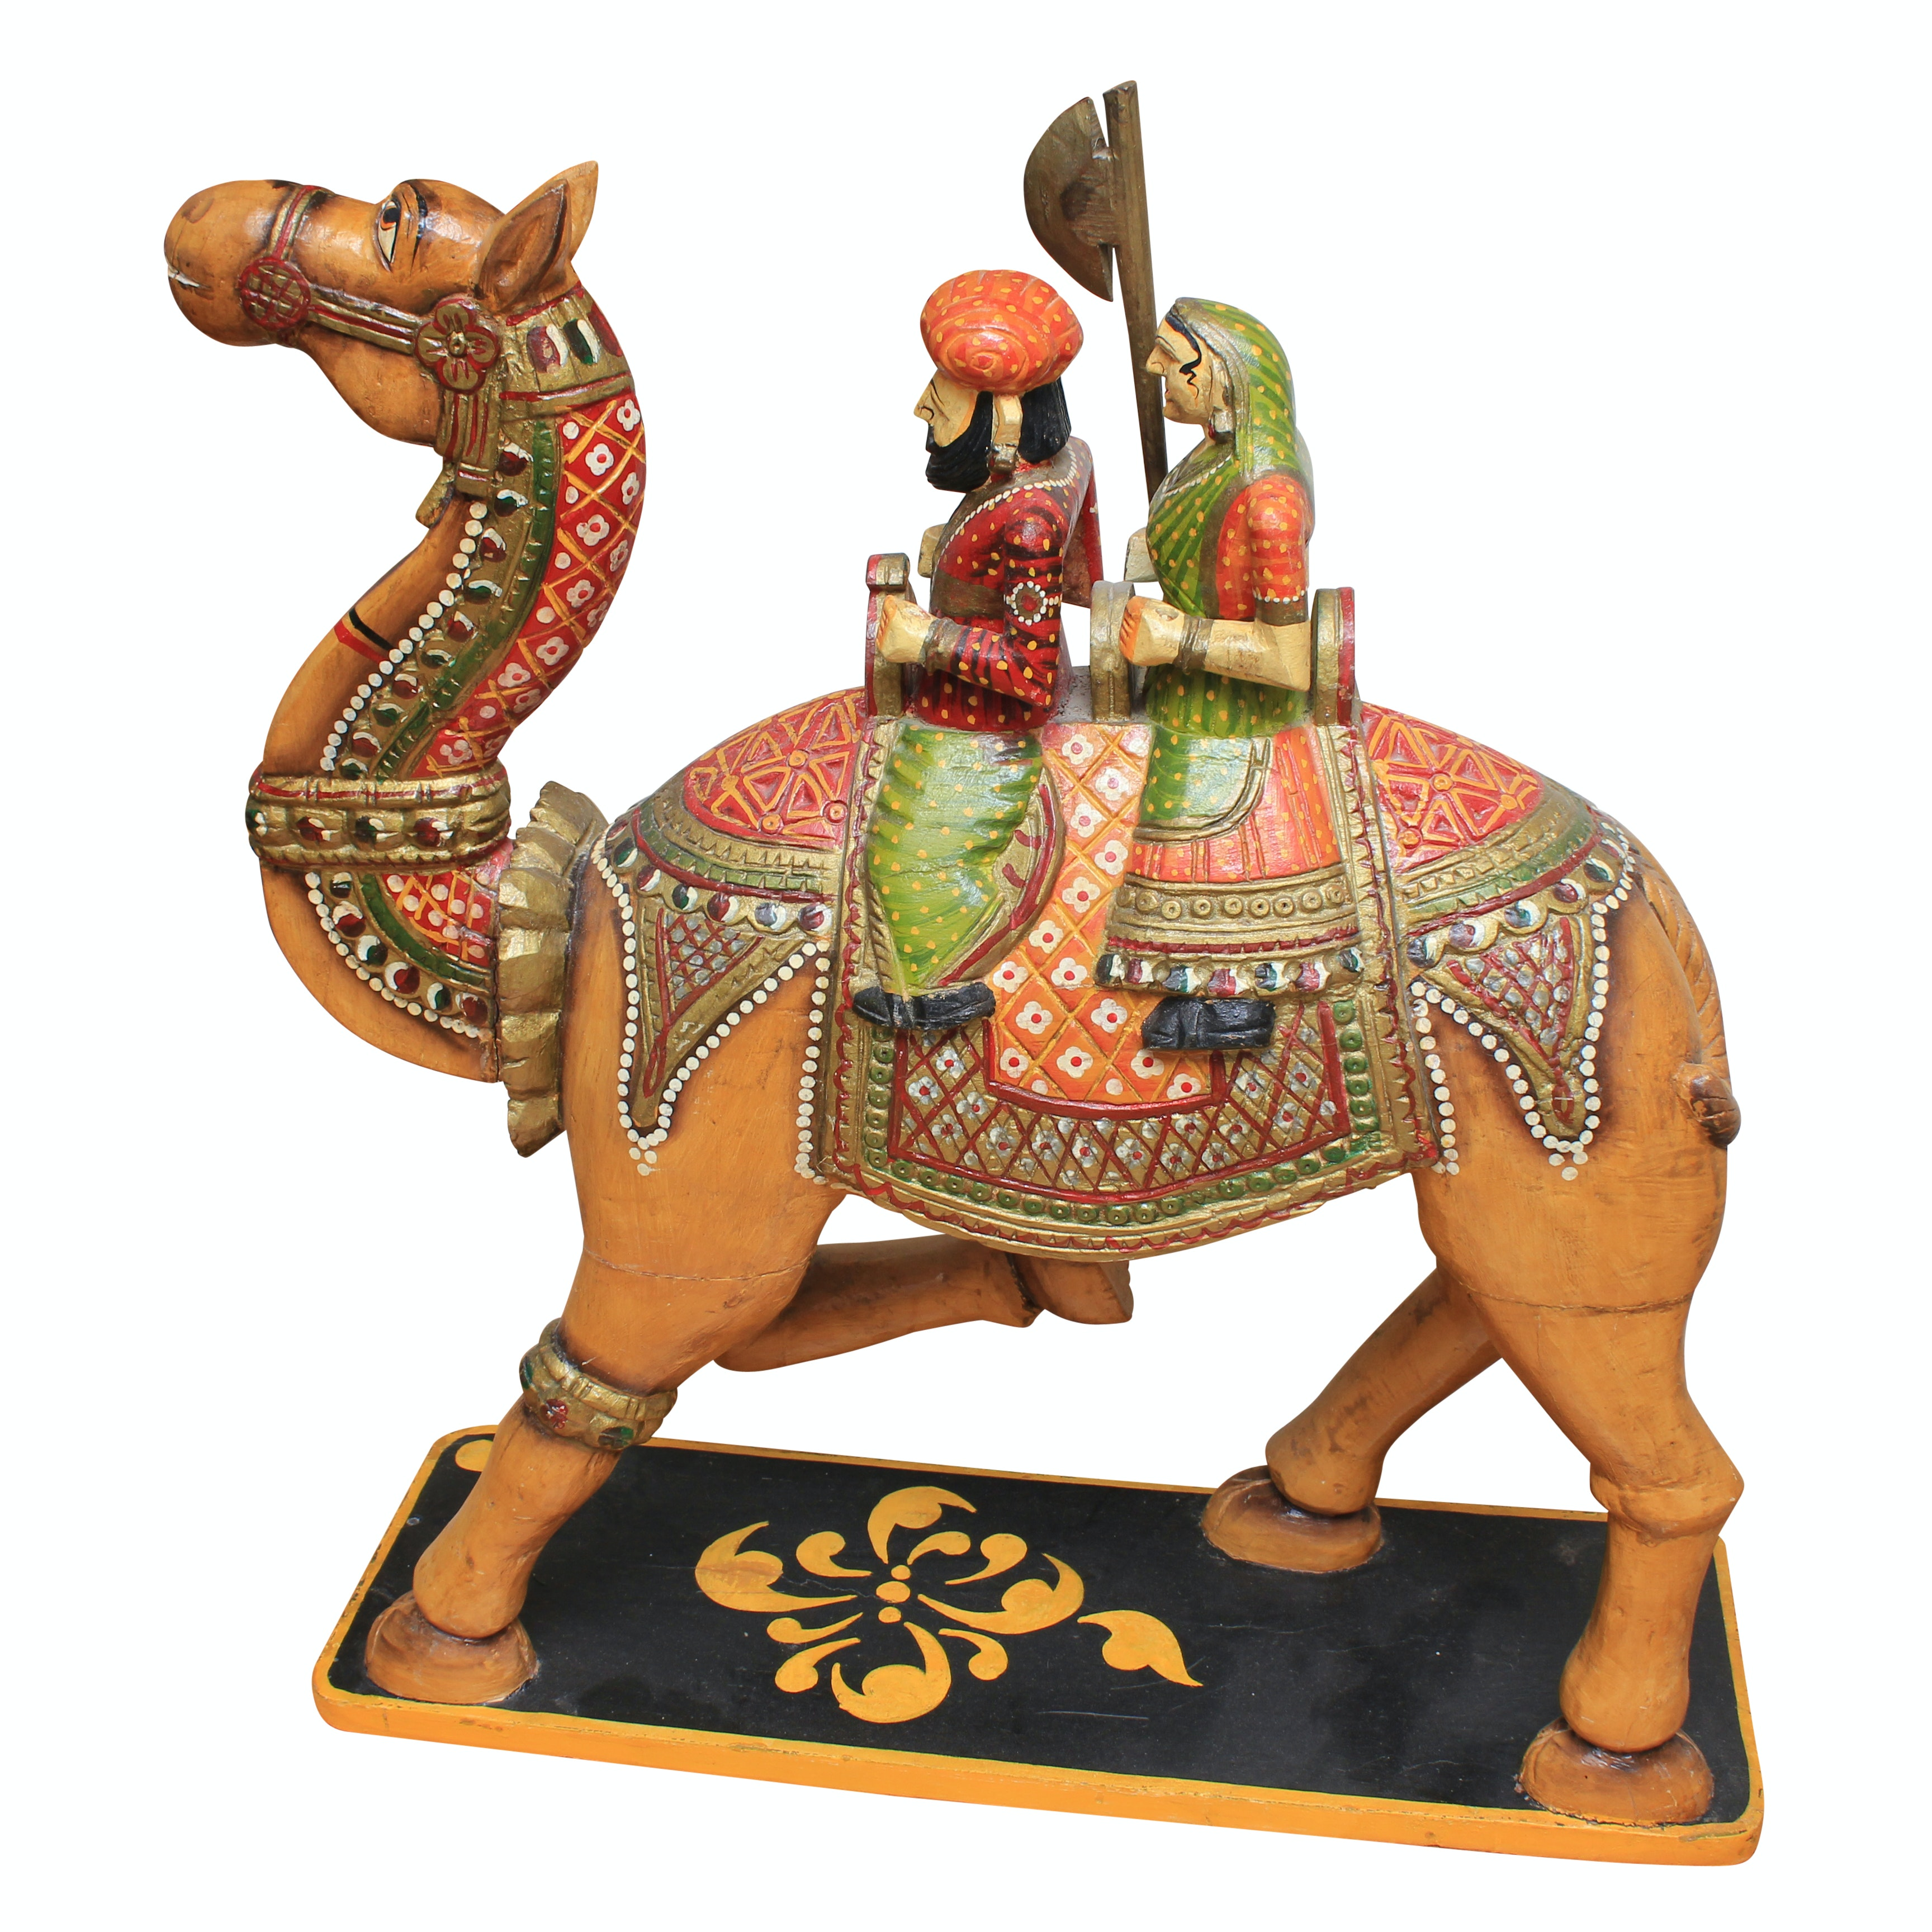 Indian Inspired Polychrome Wooden Sculpture of Figures Riding a Camel